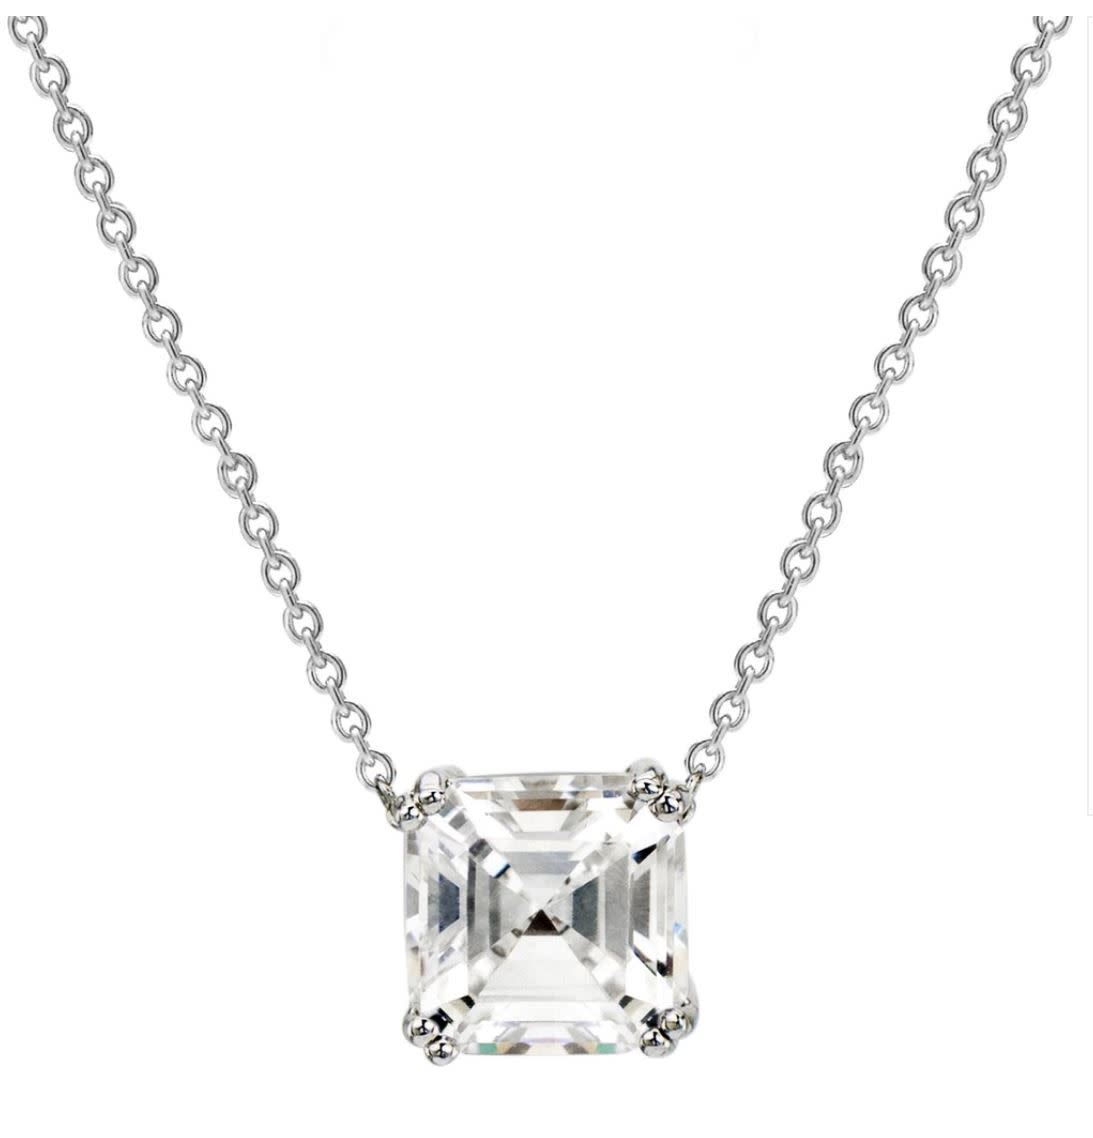 Silver asscher cut necklace 1 ejate6